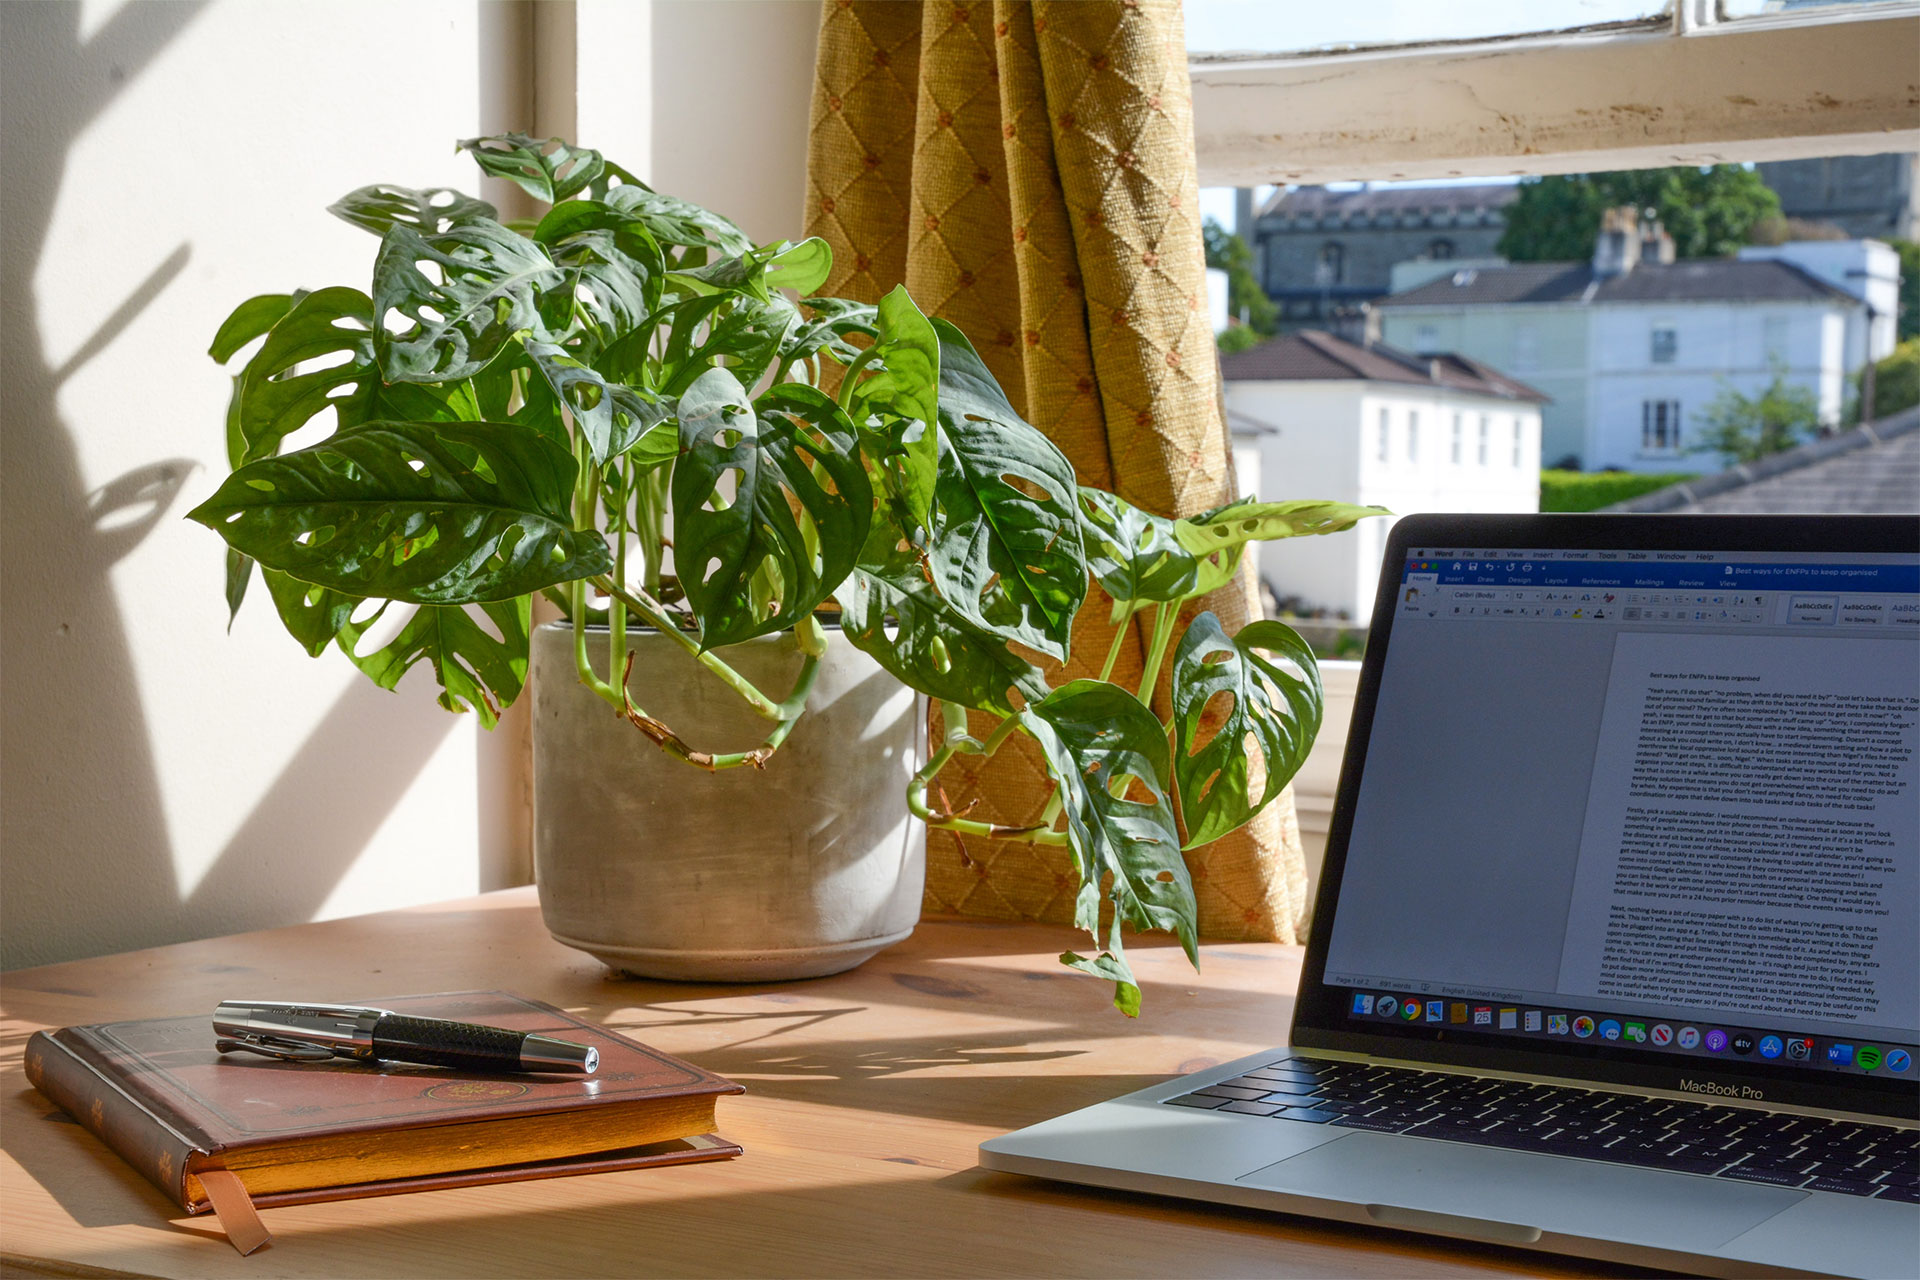 Desk with laptop and plant